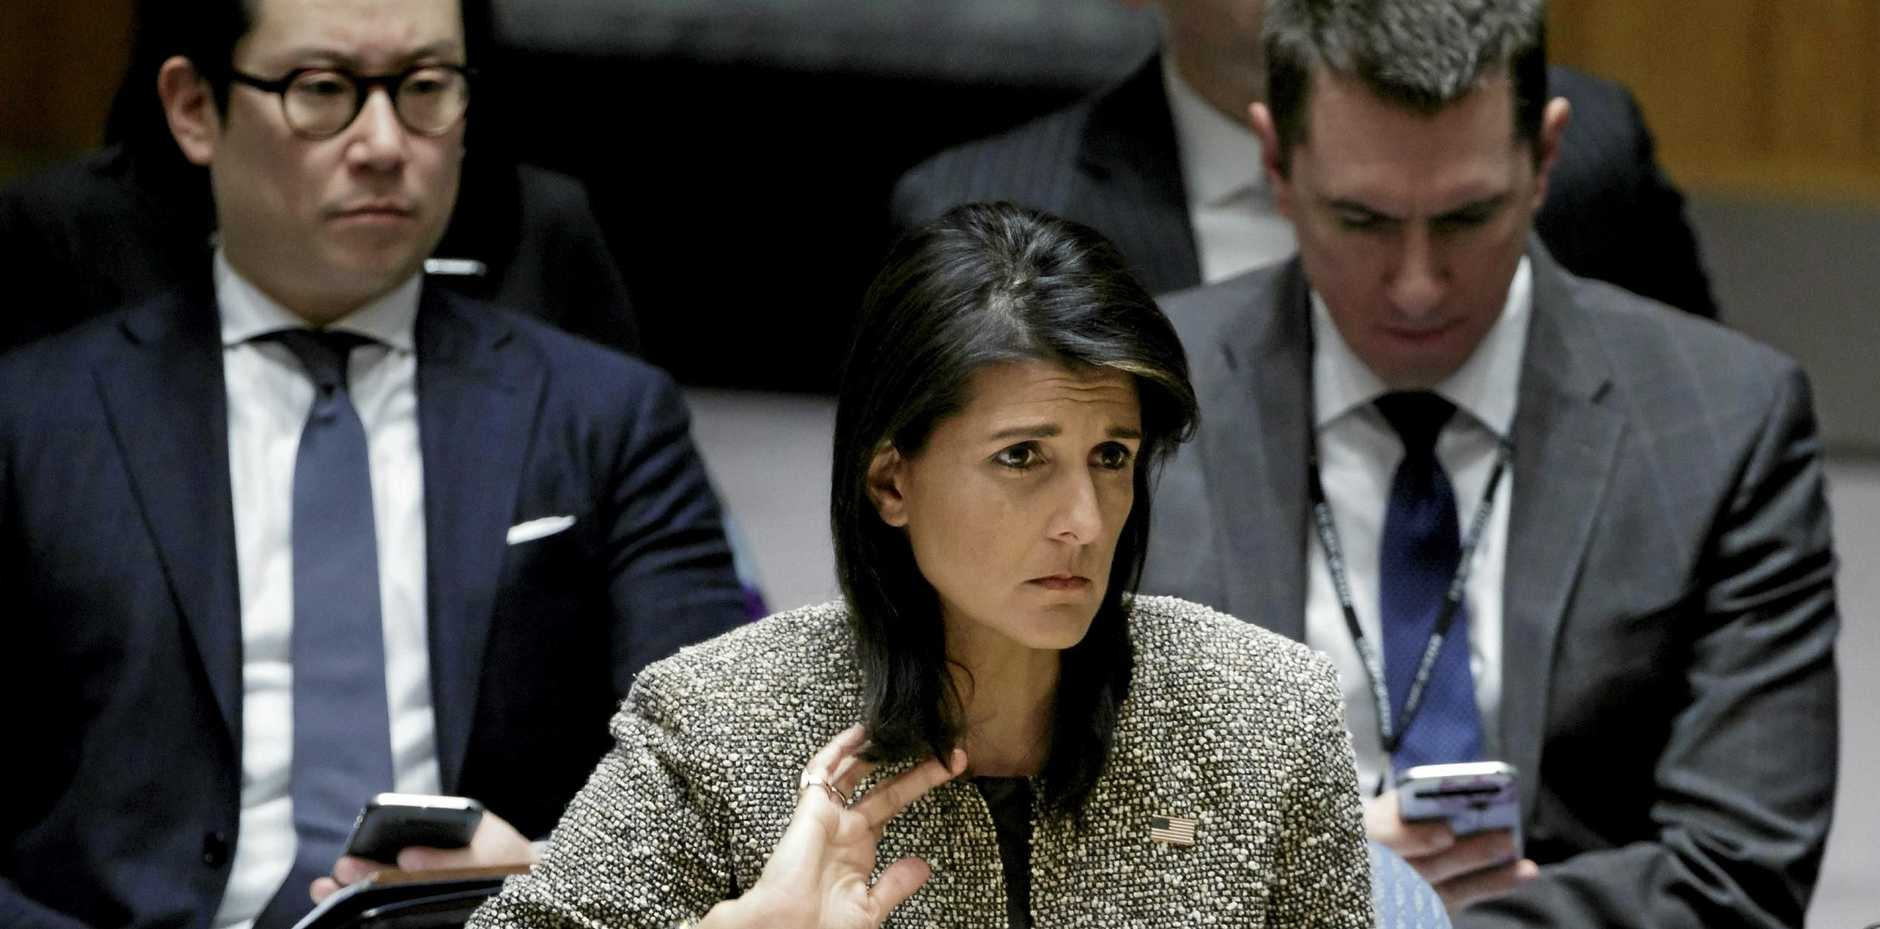 United States Ambassador to the United Nations Nikki Haley has the told international body that America is withdrawing from a UN declaration intended to protect the rights of migrants.